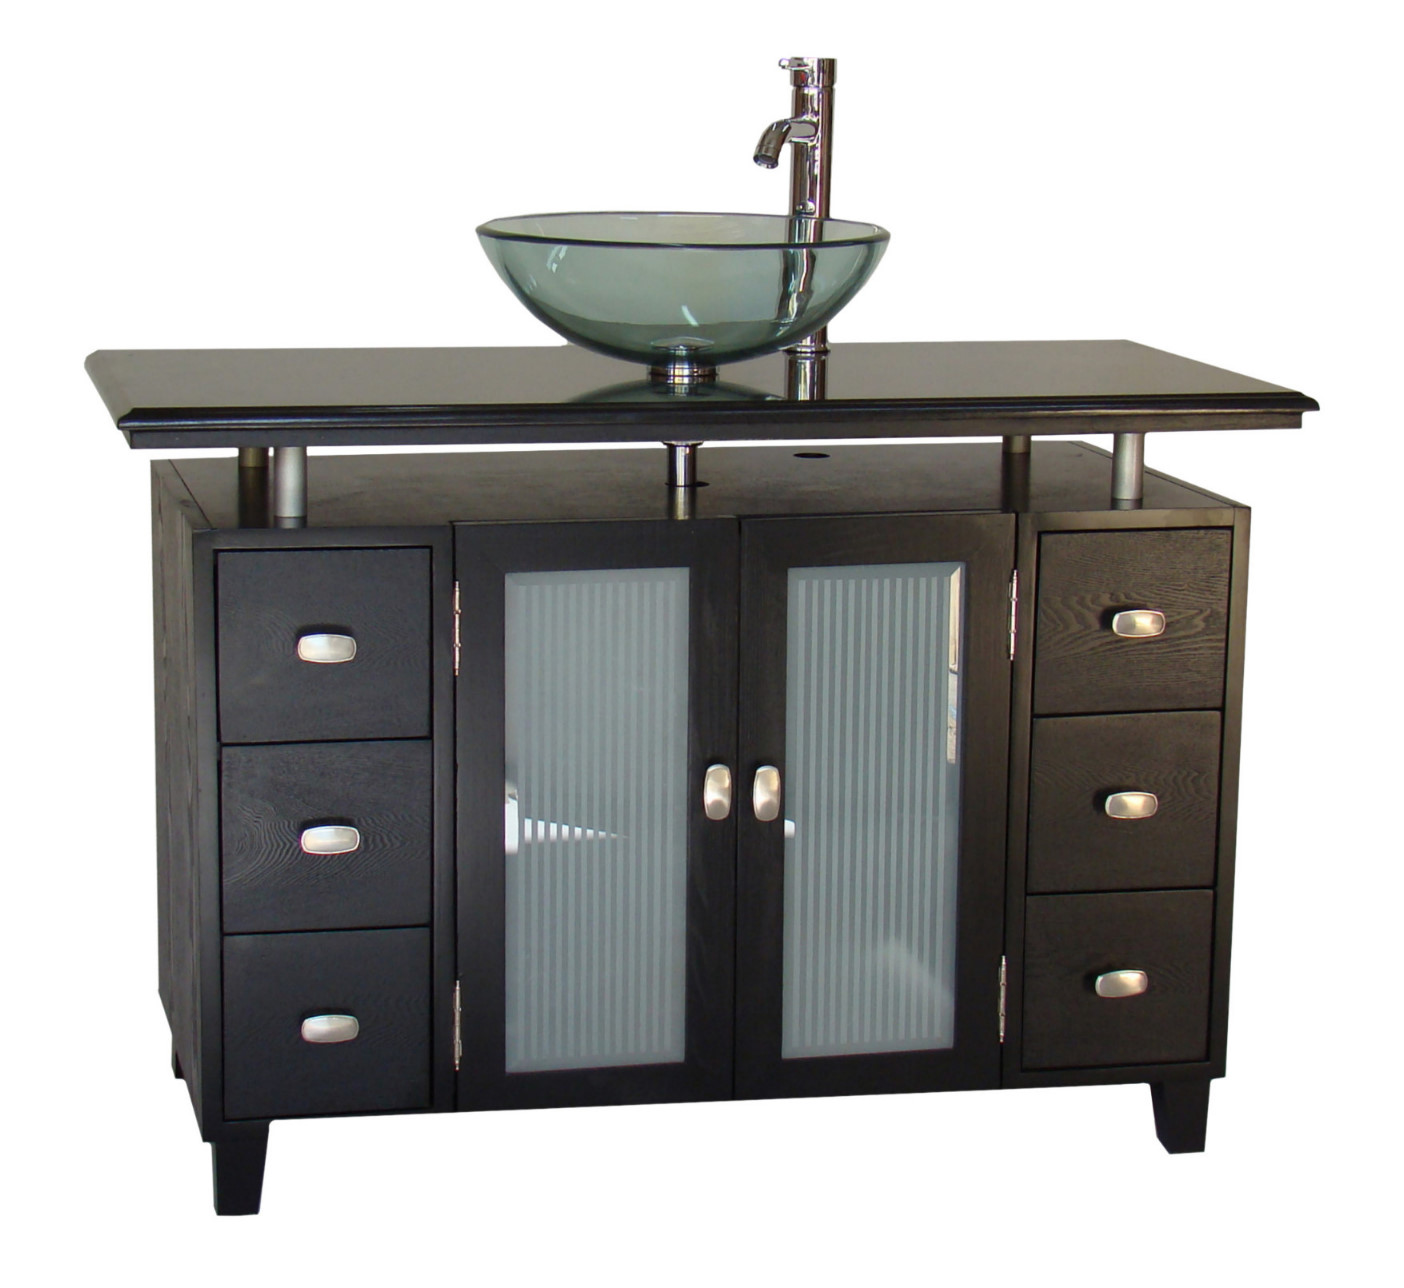 Adelina 46 inch vessel sink bathroom vanity black granite top Black vessel bathroom sink